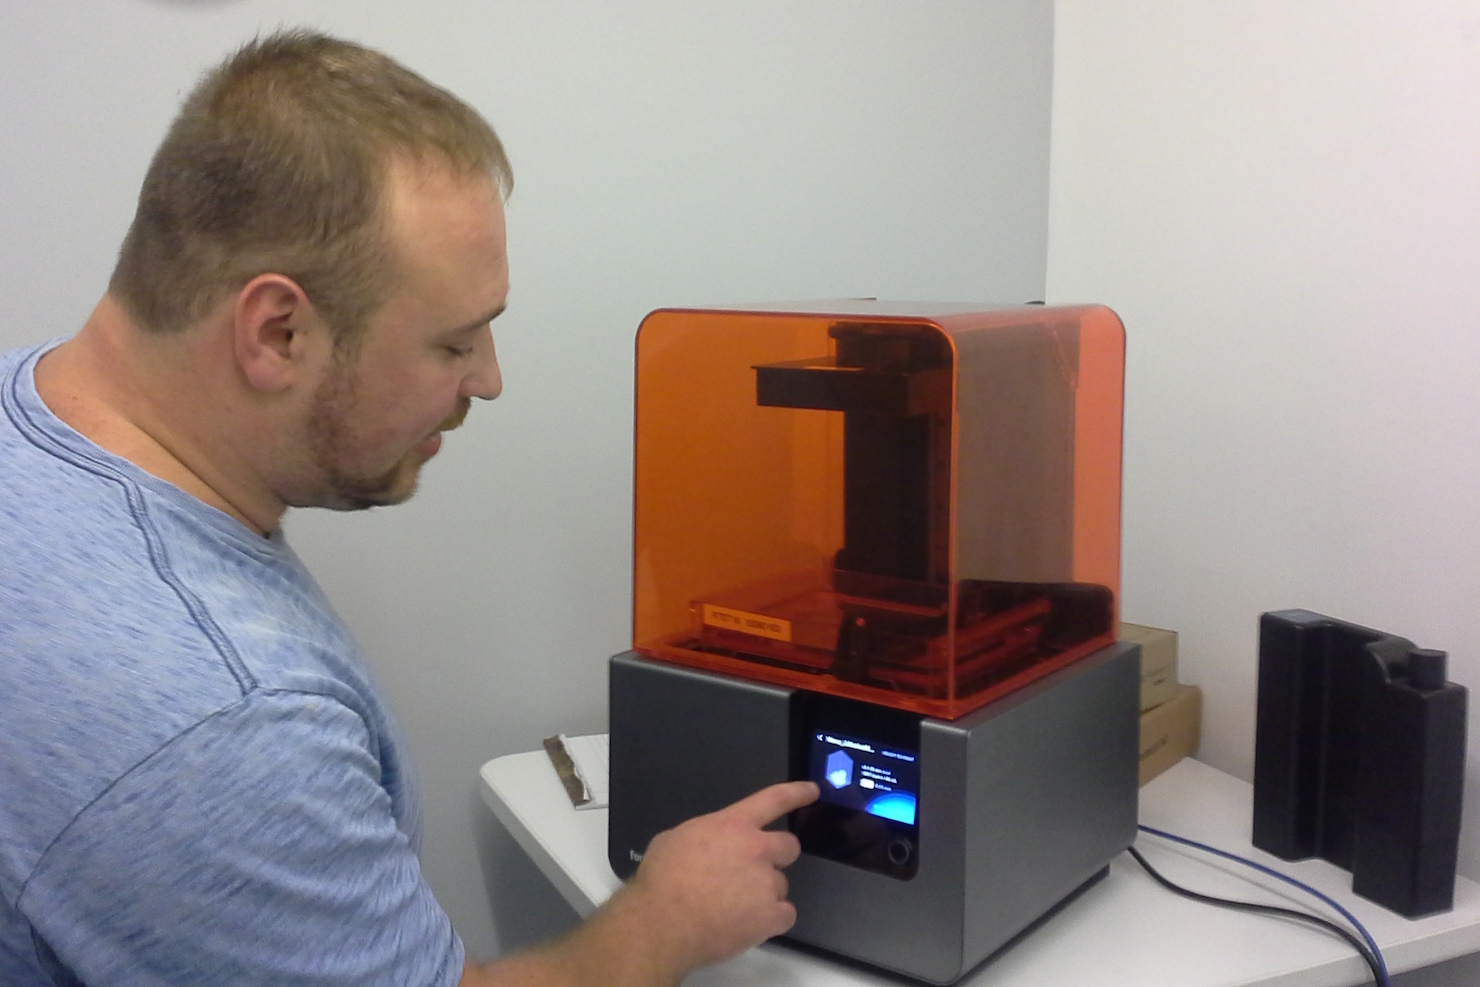 David Lakatos with Form 2 printer